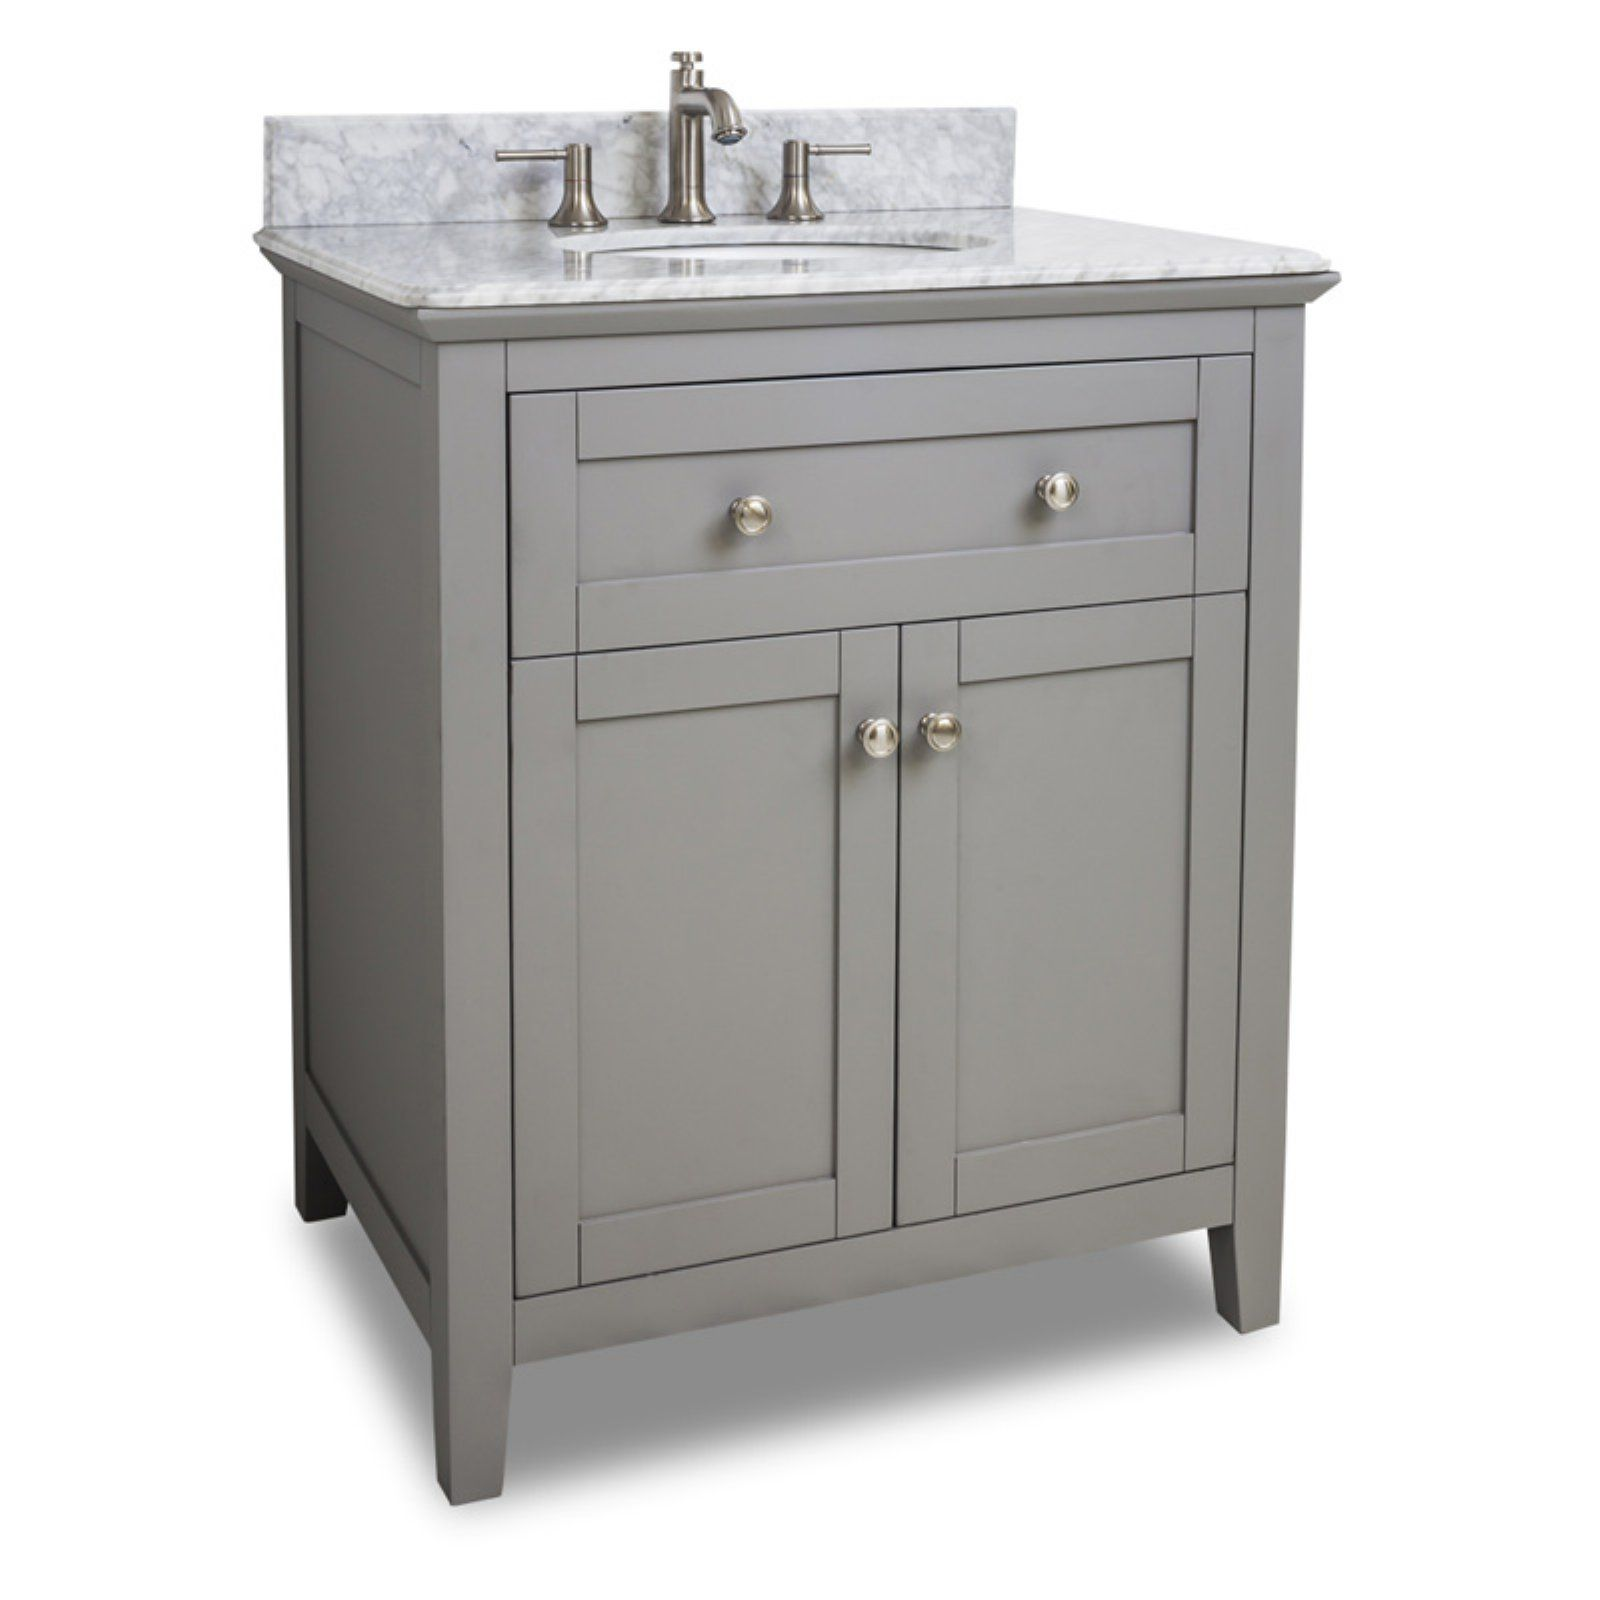 Chatham Shaker Jeffrey Alexander 30 In Vanity 30 Inch Bathroom